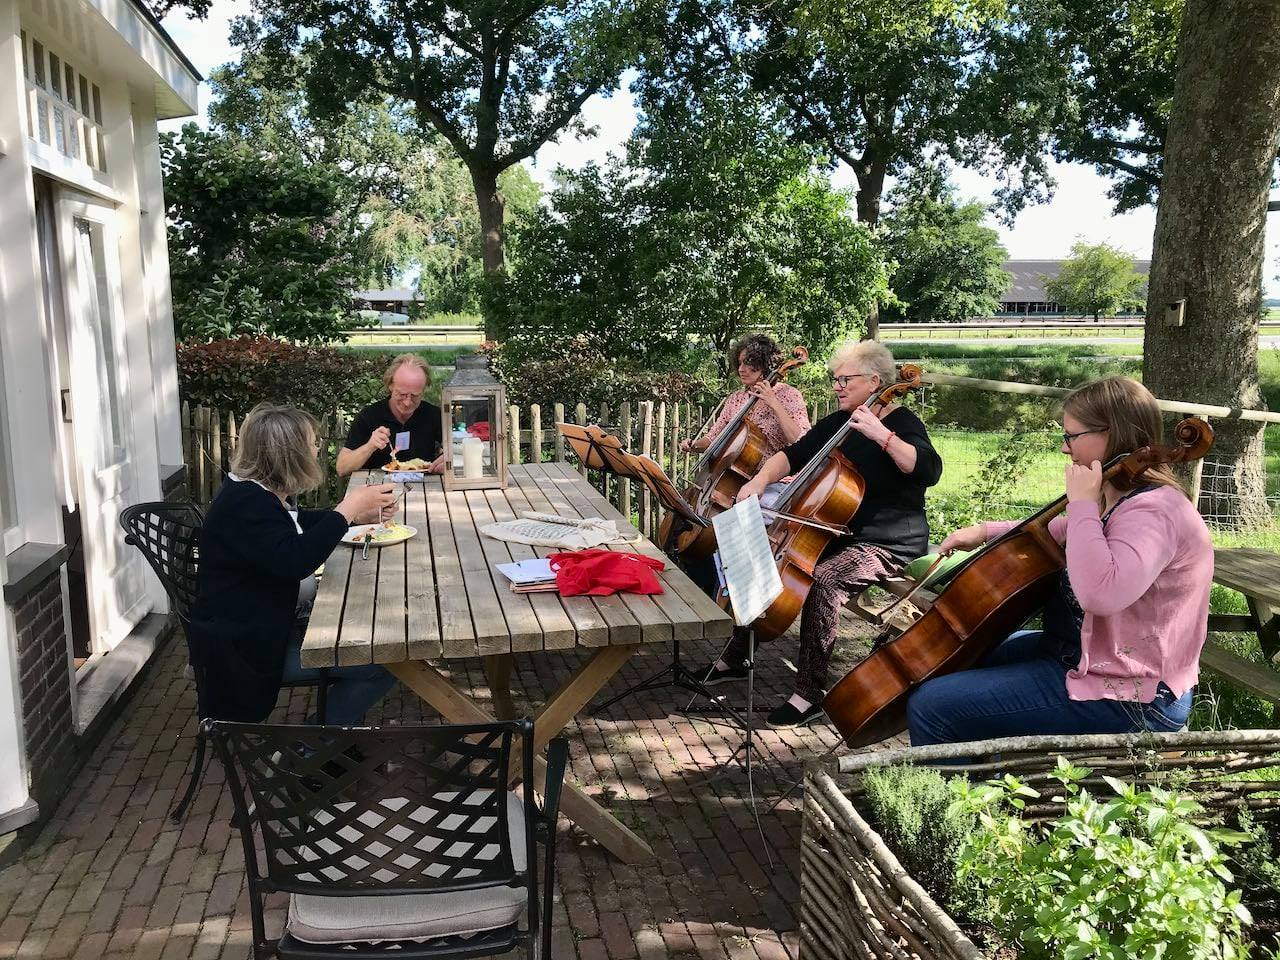 celloweekend-havelte-drenthe-2020-2